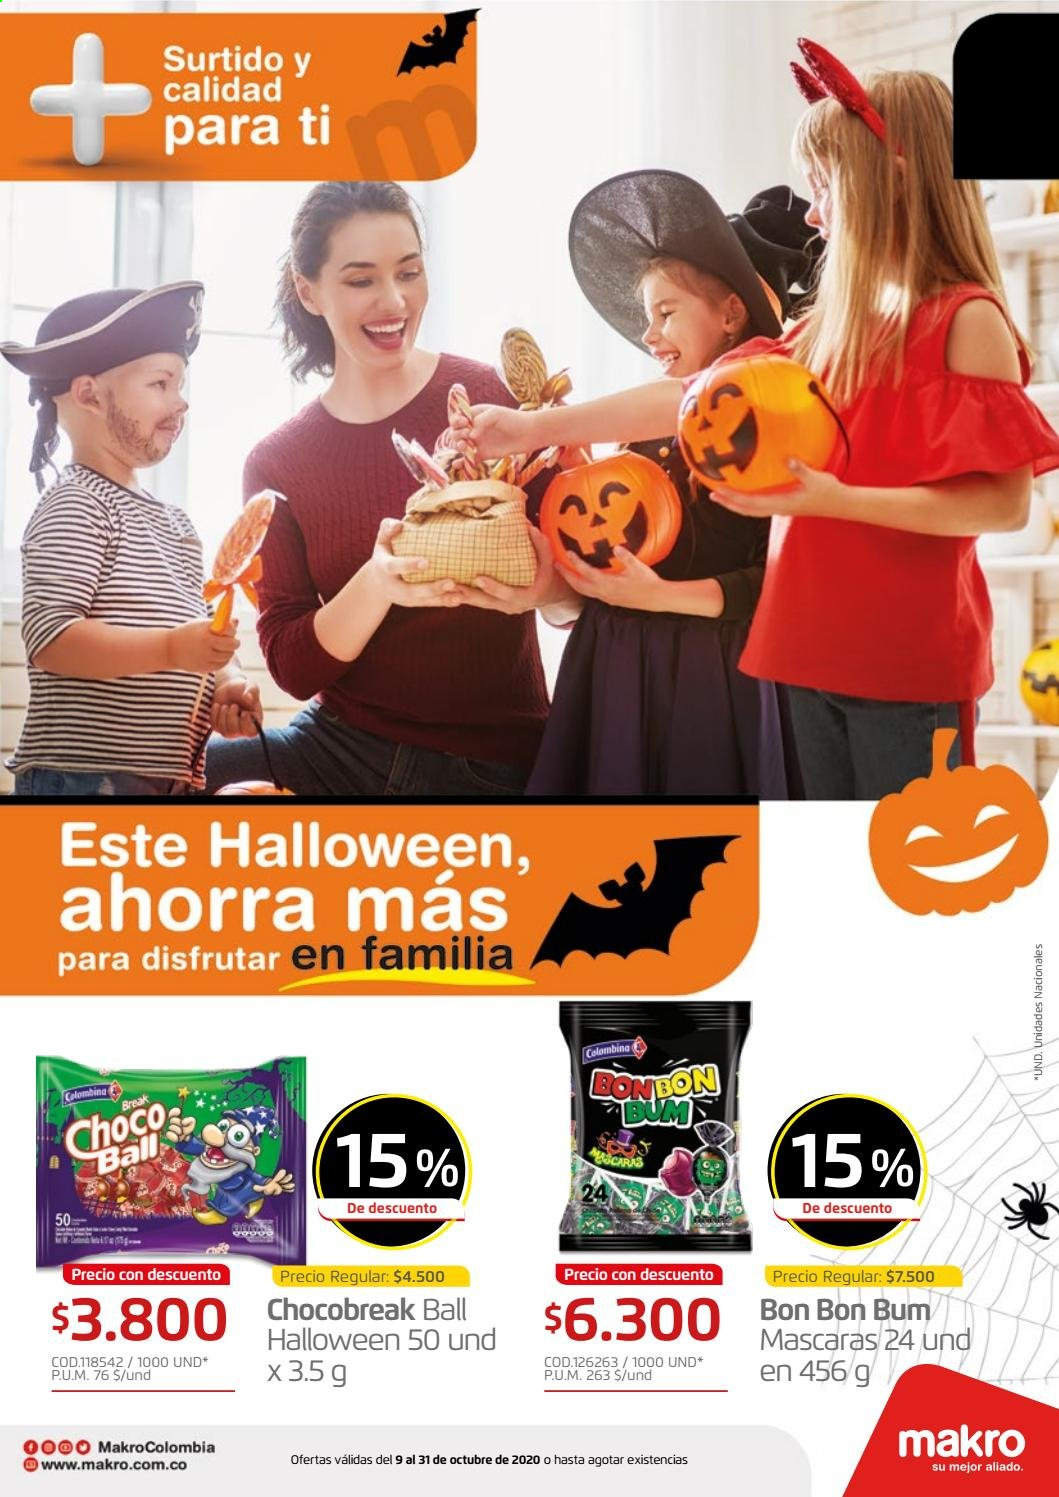 Folleto actual Makro - 10.09.2020 - 10.31.2020 - Ventas - máscara, choco, surtido. Página 1.